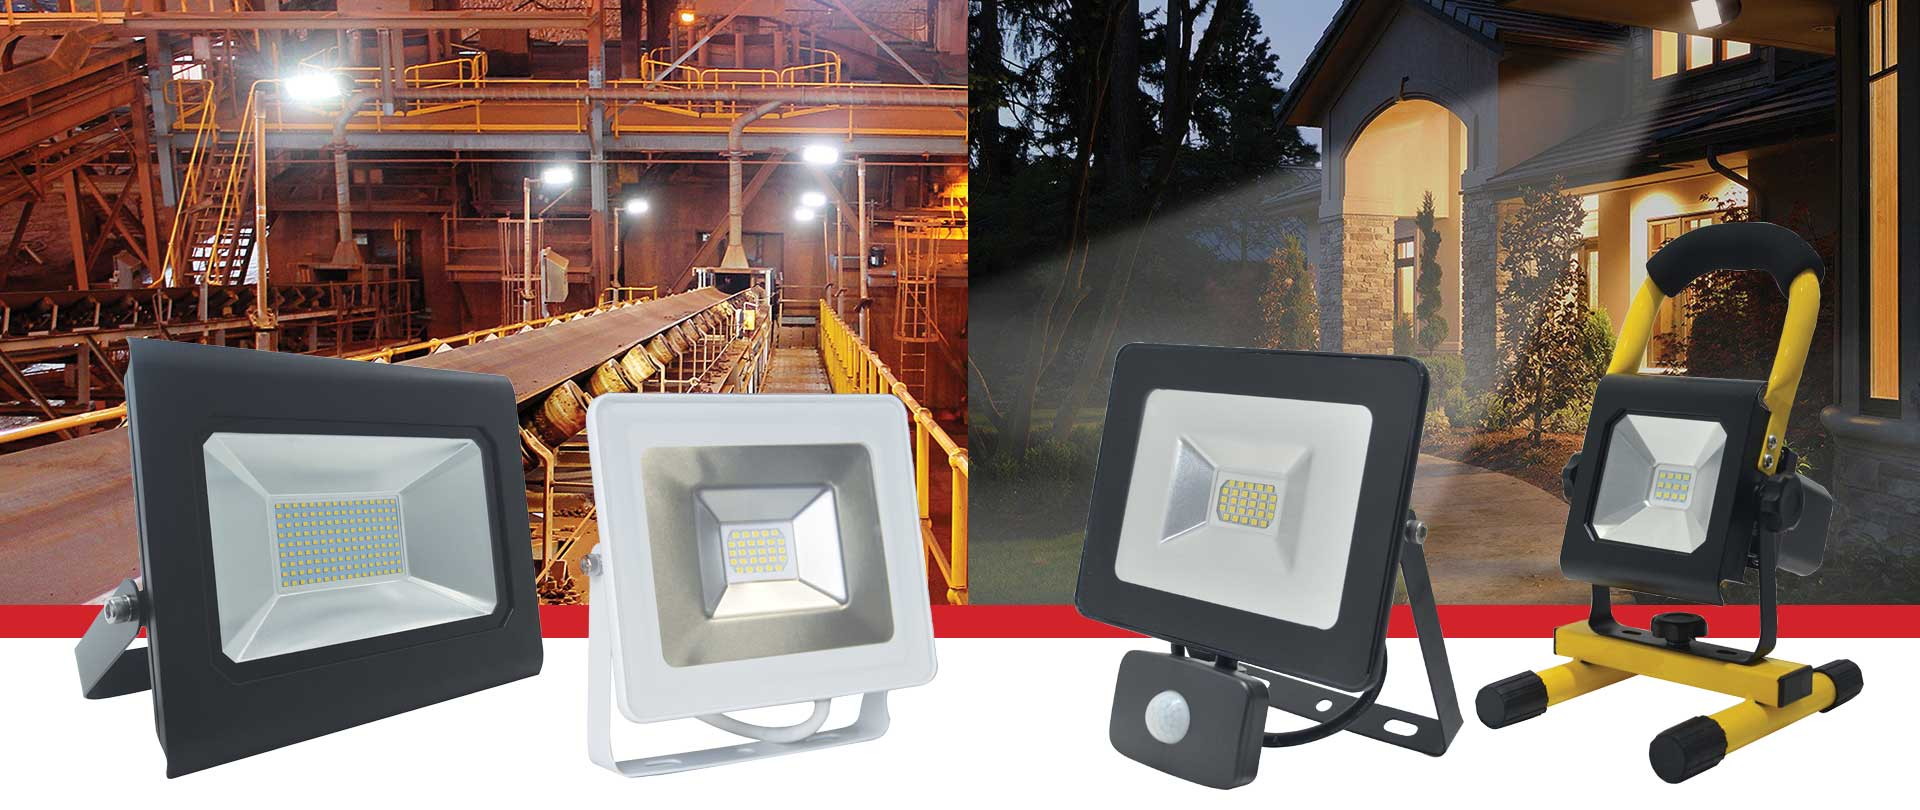 Prelux Prowler LED Floodlights